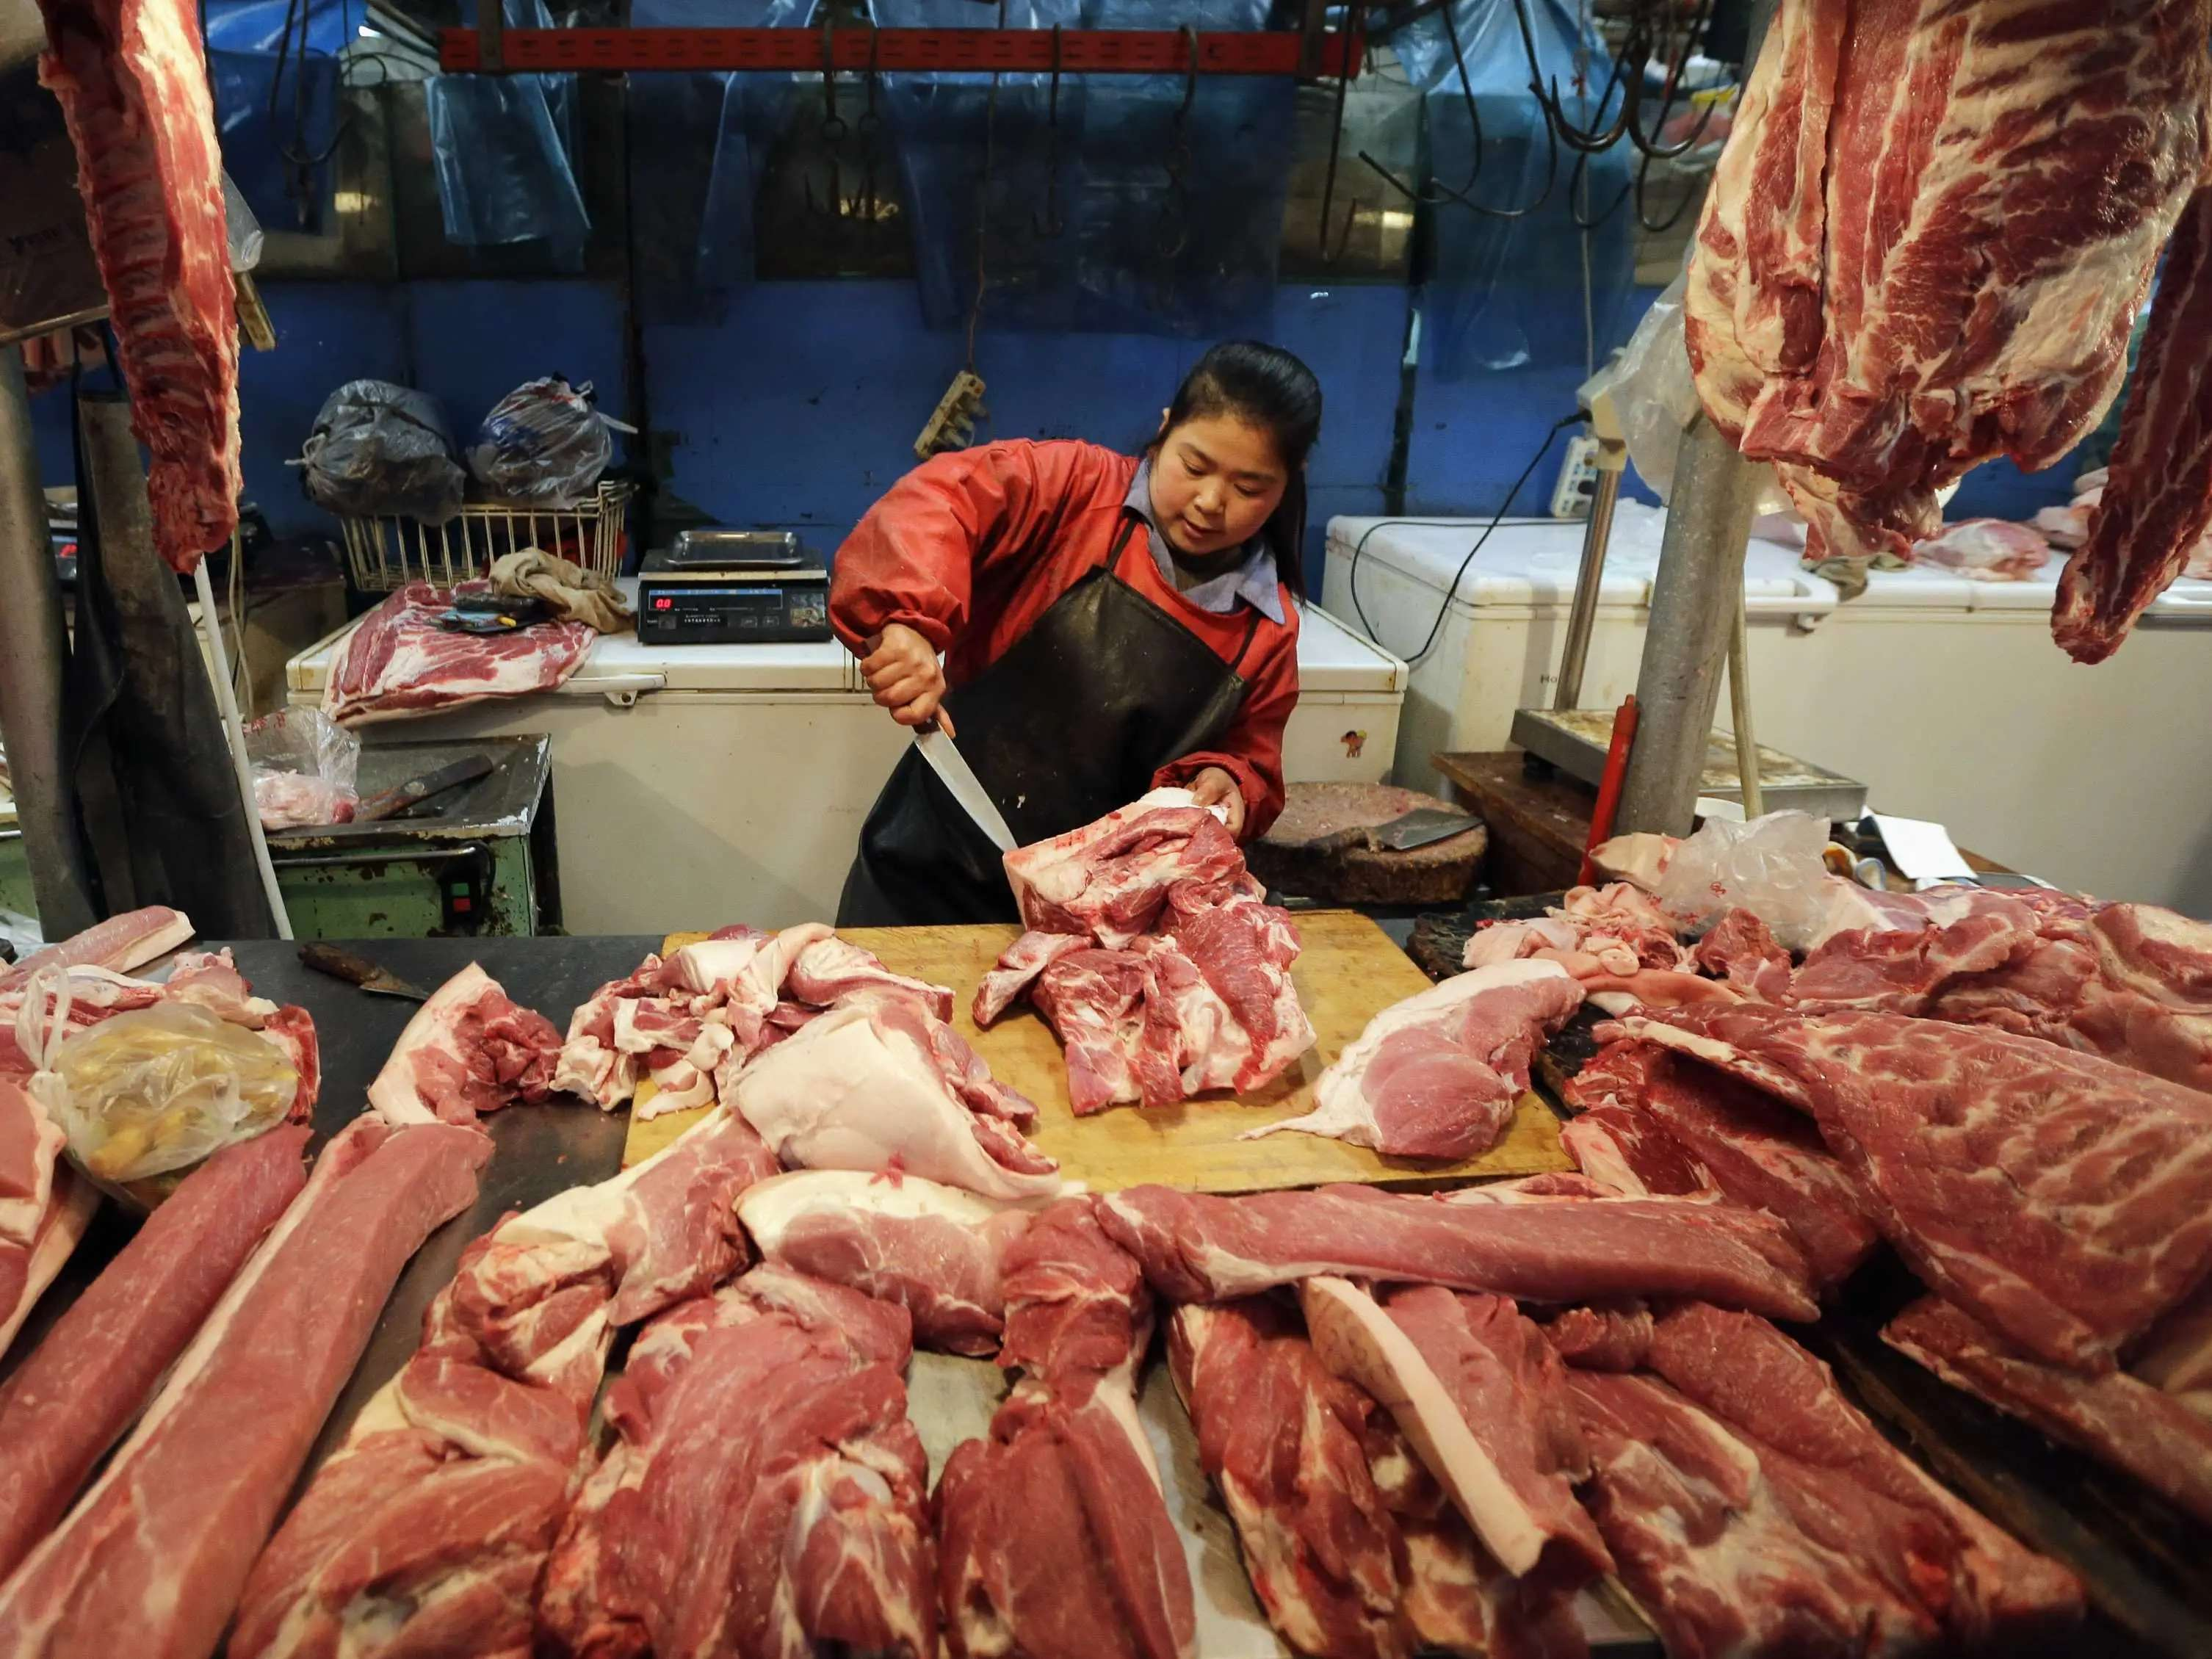 China eats about 5,200 Eiffel towers' worth of pork a year.